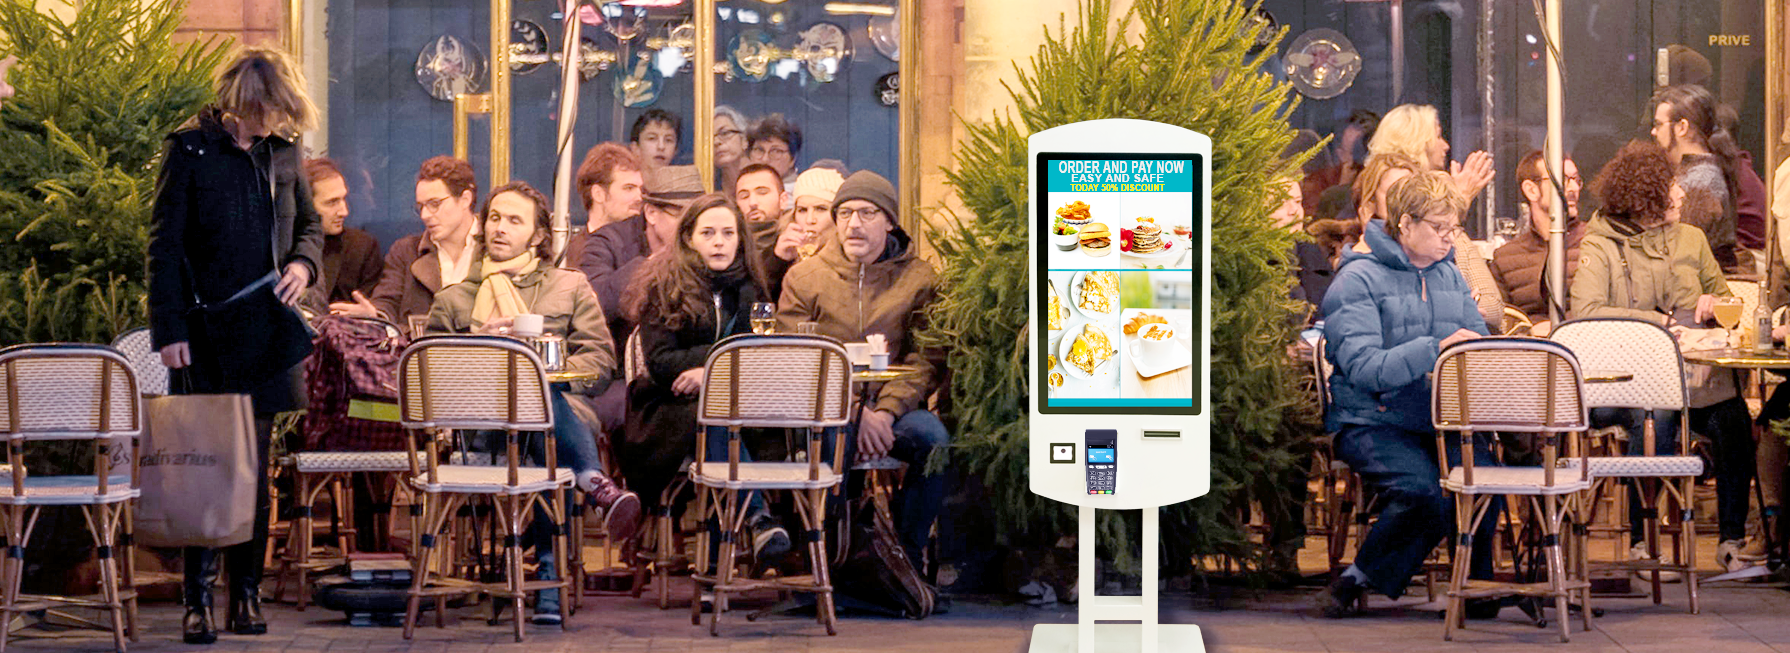 CASSA SELF SERVICE DIGITAL SIGNAGE, SELF-SERVICE PAYMENT KIOSK SmartMedia